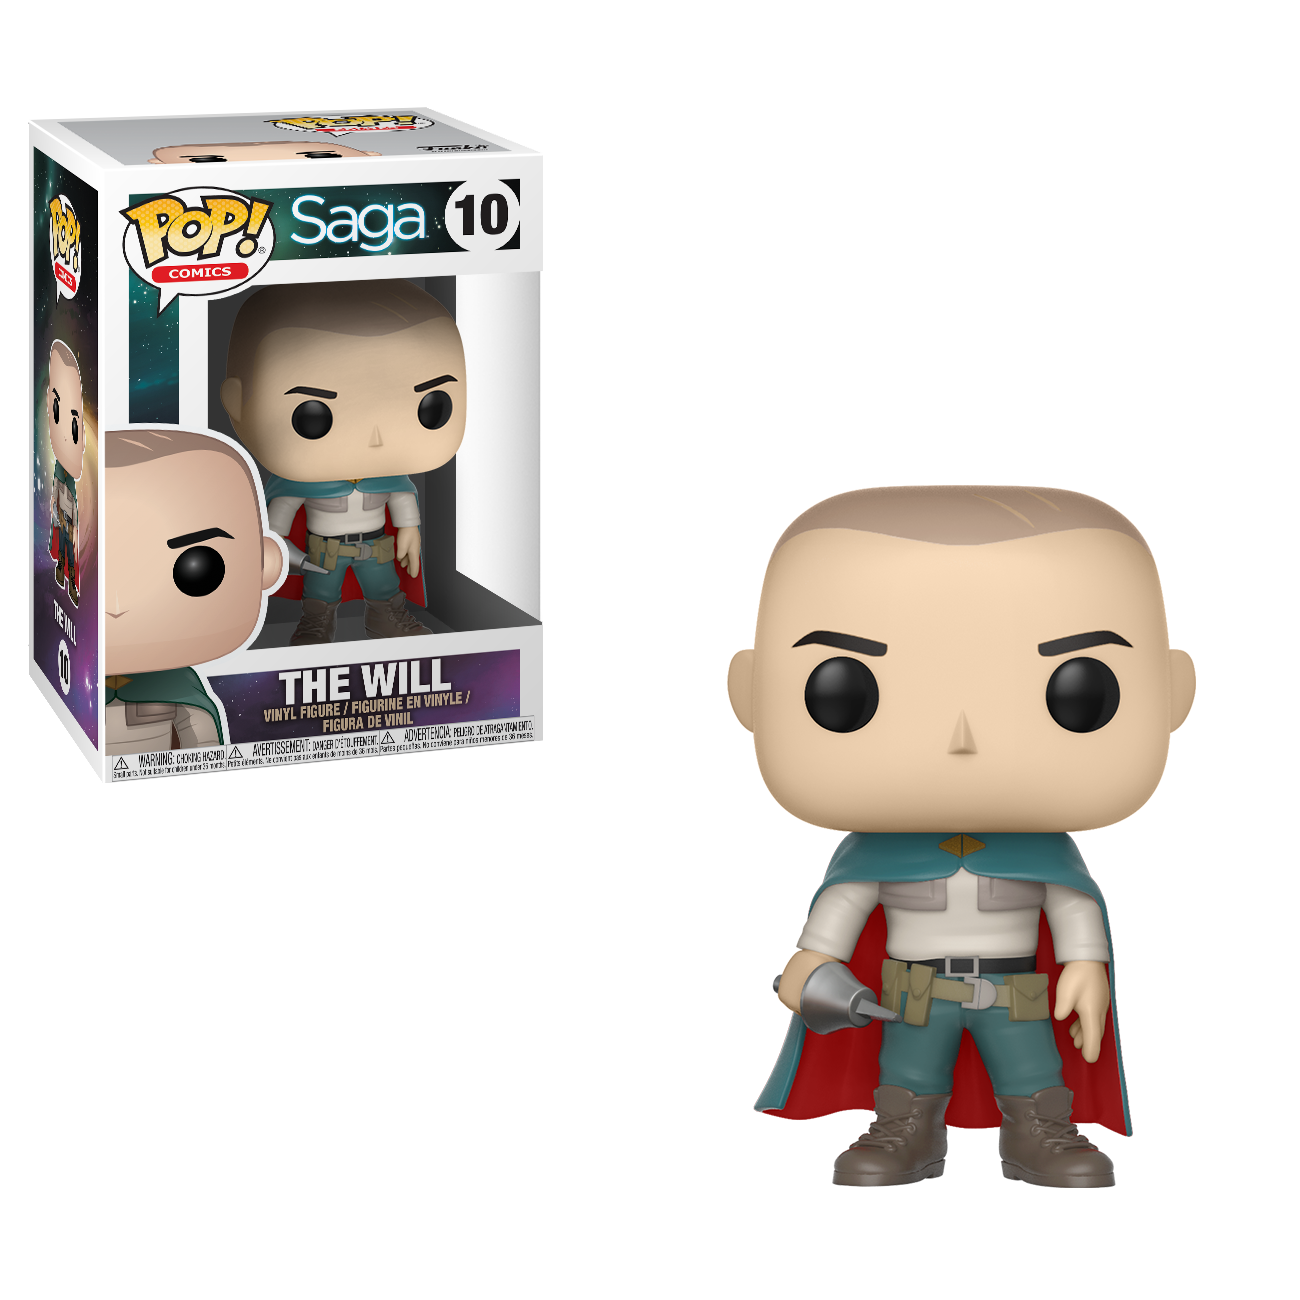 SAGA Funko Pop! - The Will